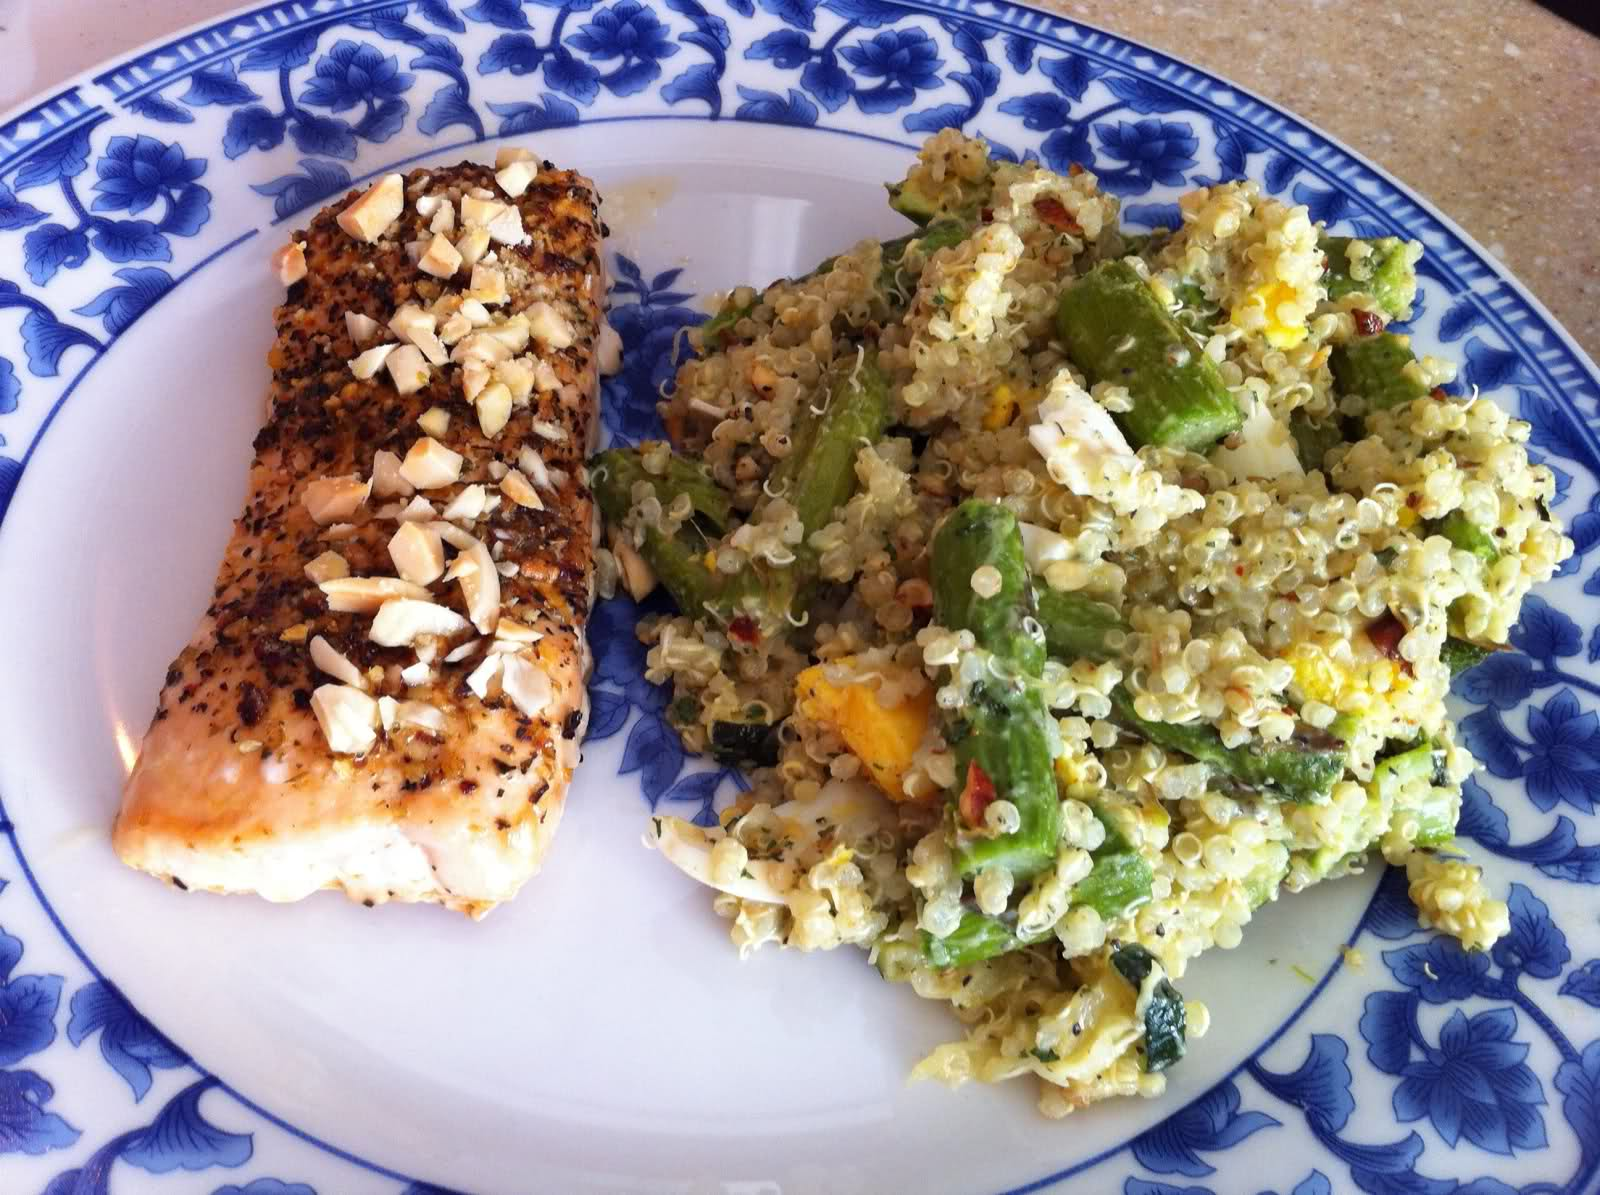 Shortcut Recipes: Zucchini and Aspargus Quinoa Salad